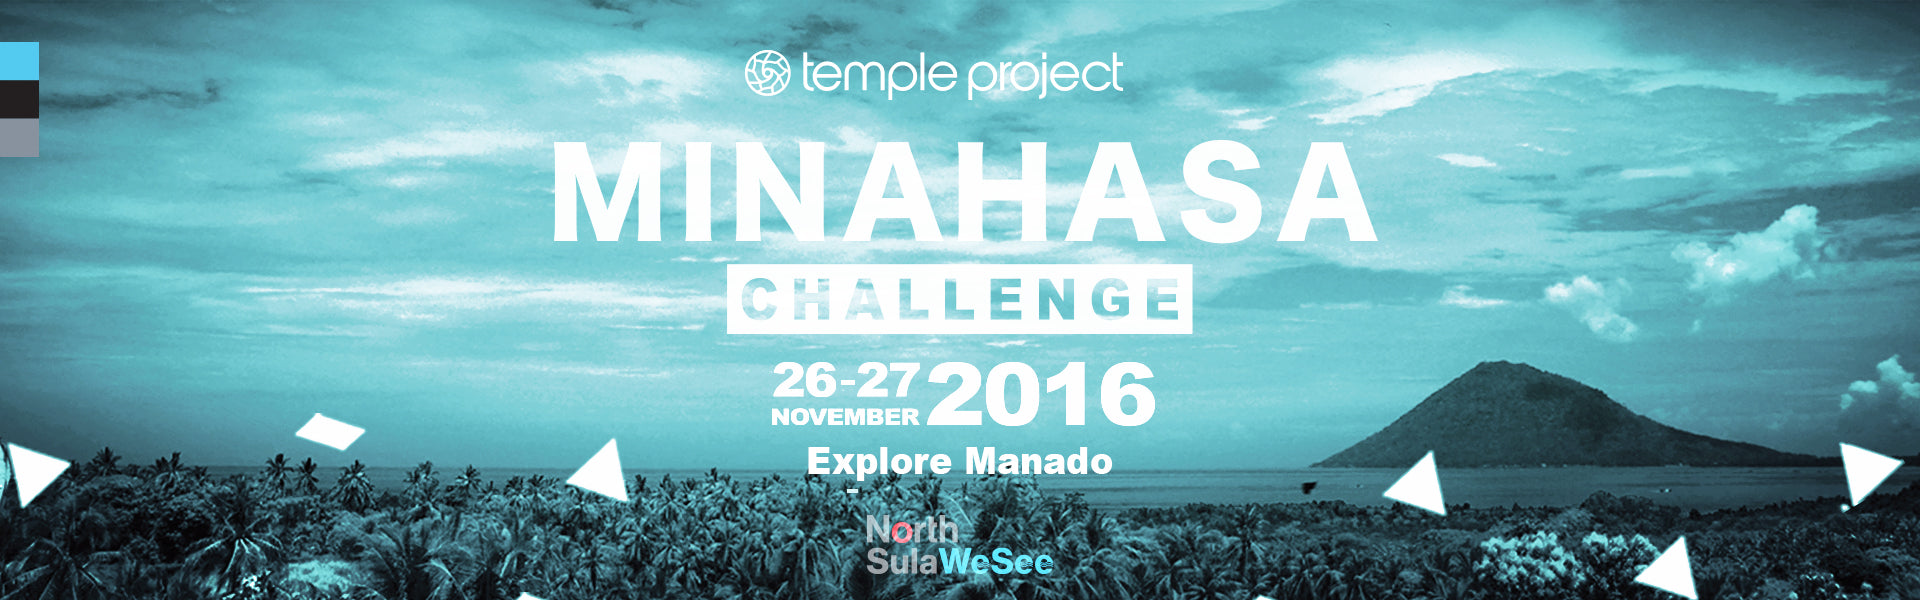 temple project cycling adventure minahasa challenge manado